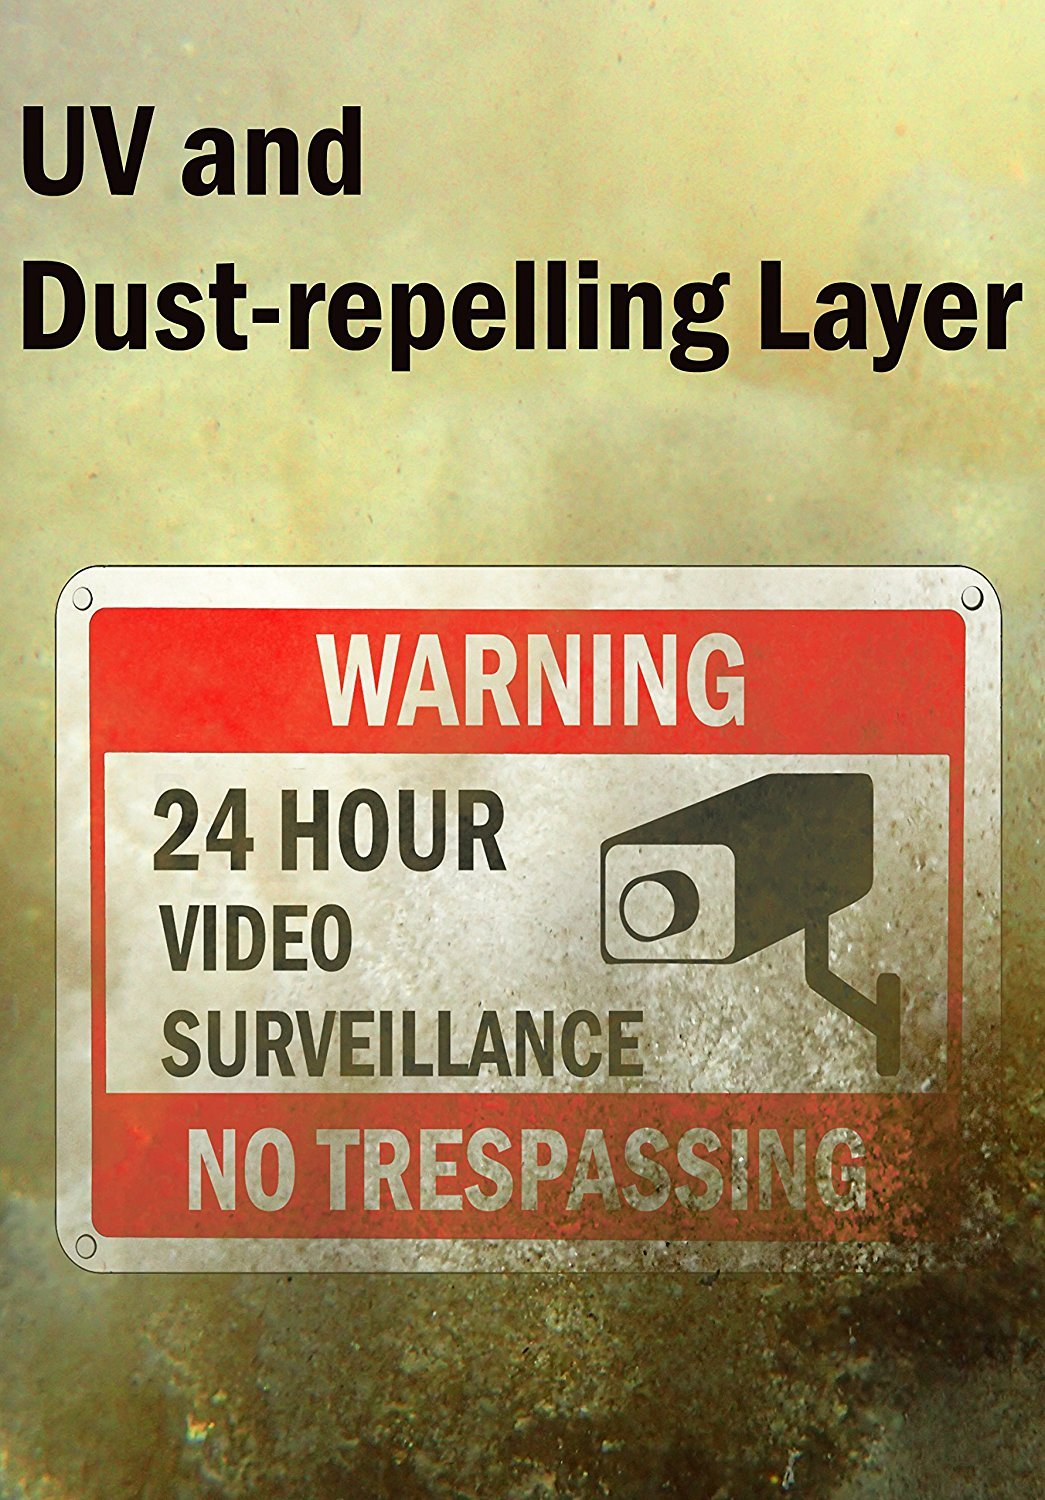 WISLIFE Video Surveillance Sign Set, 2 (10'' X 7'') Aluminum Warning Signs & 6 (6''X6'') Window Stickers, Video Security Signs by WISLIFE (Image #5)